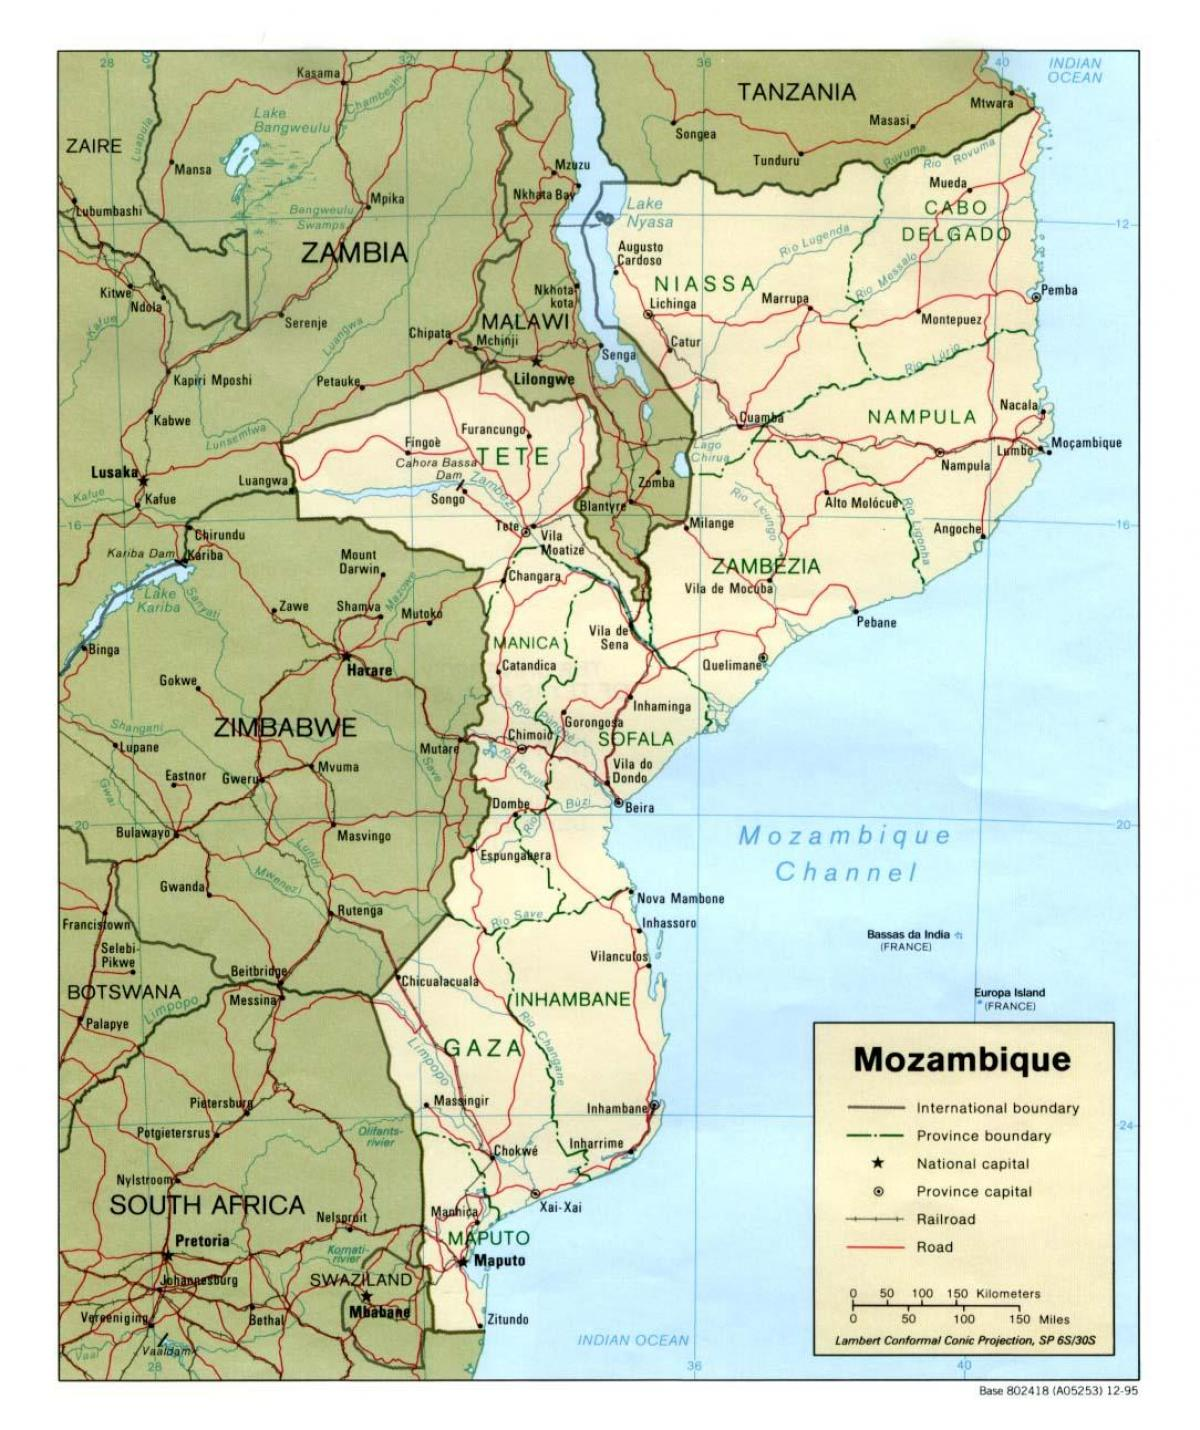 kort over Mozambique veje